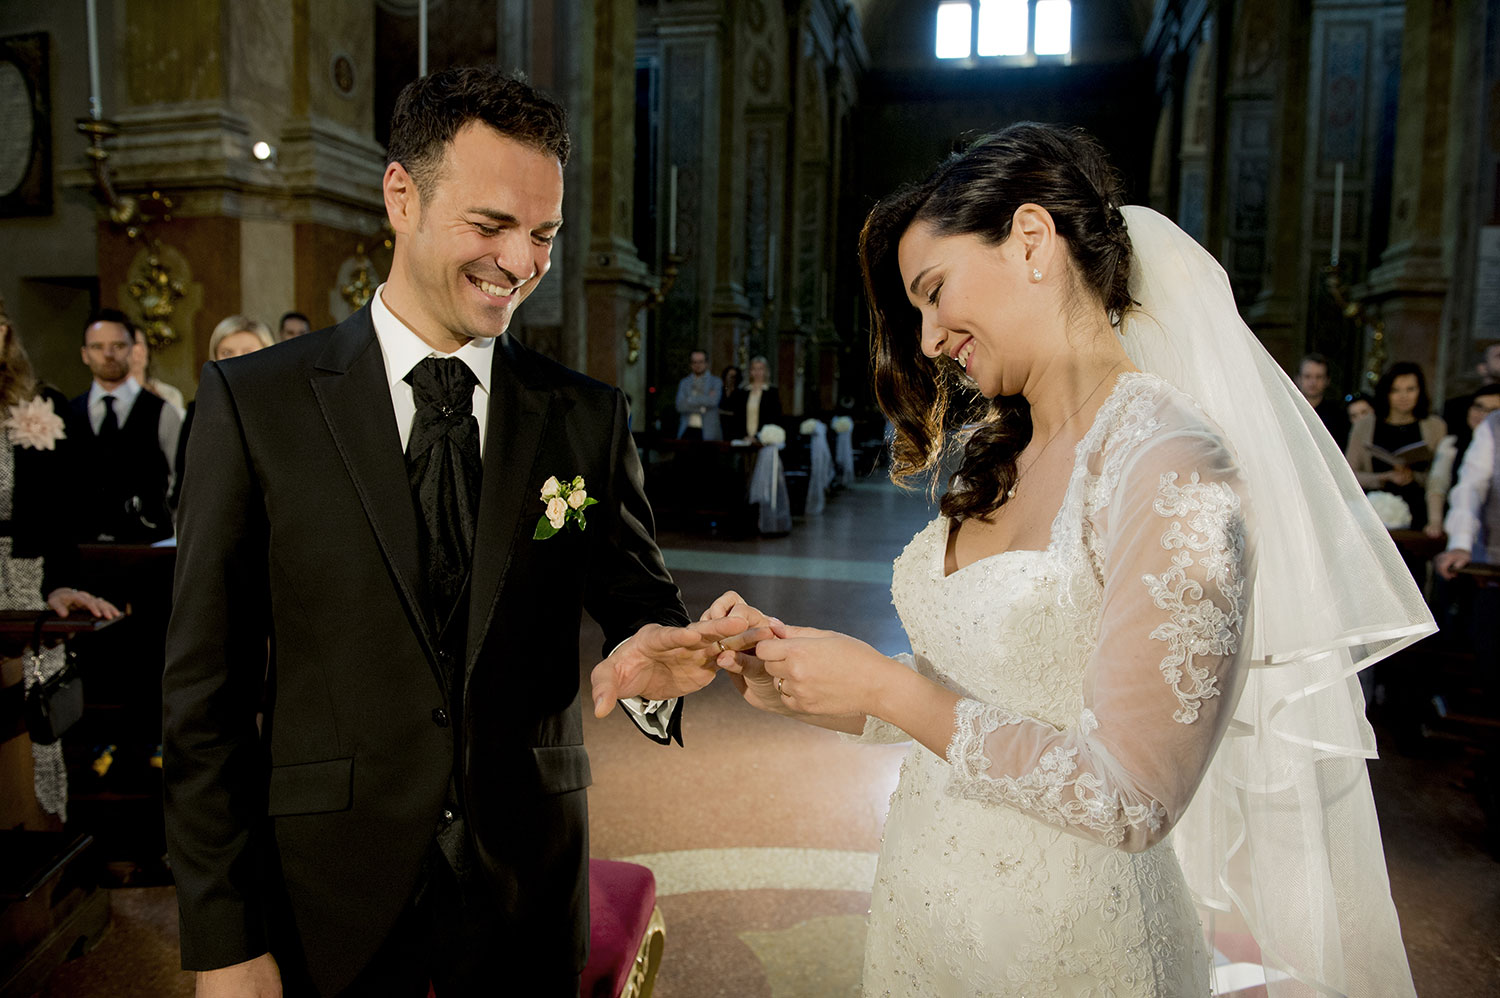 ivano-di-maria-photographer-wedding-emmanuela-andrea-06